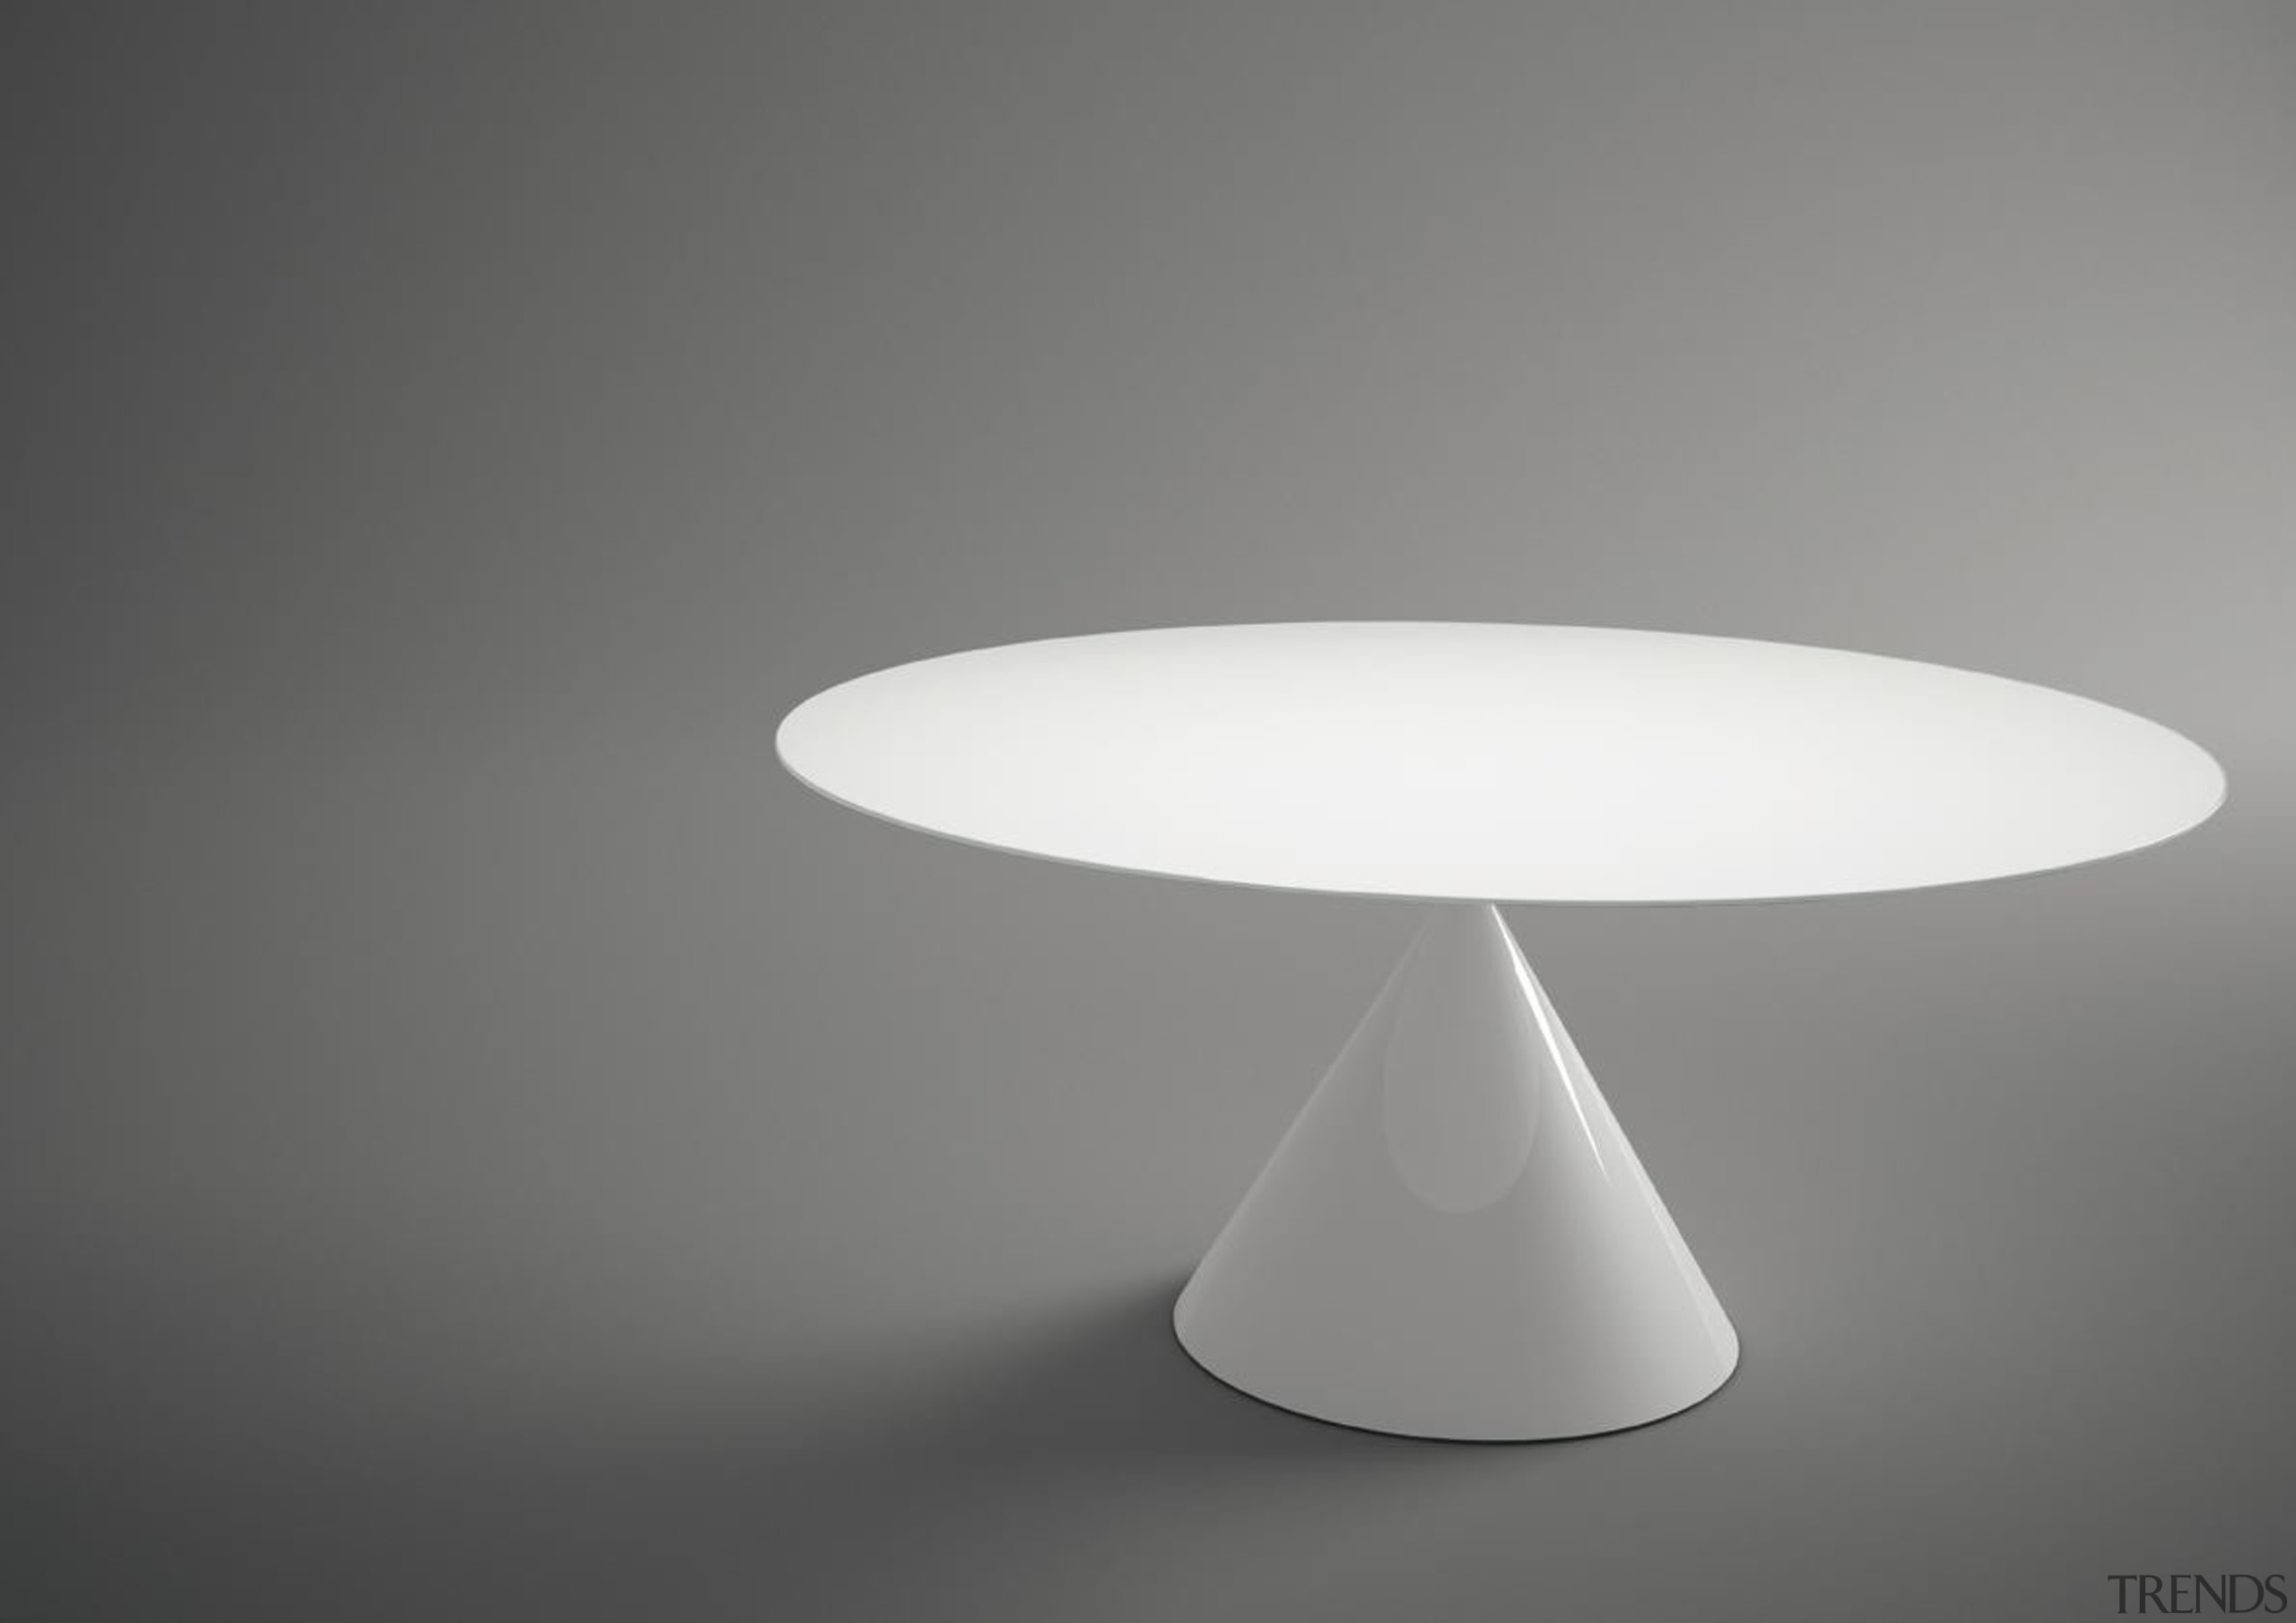 This year's International Furniture Fair Milan, featured many furniture, light fixture, lighting accessory, table, gray